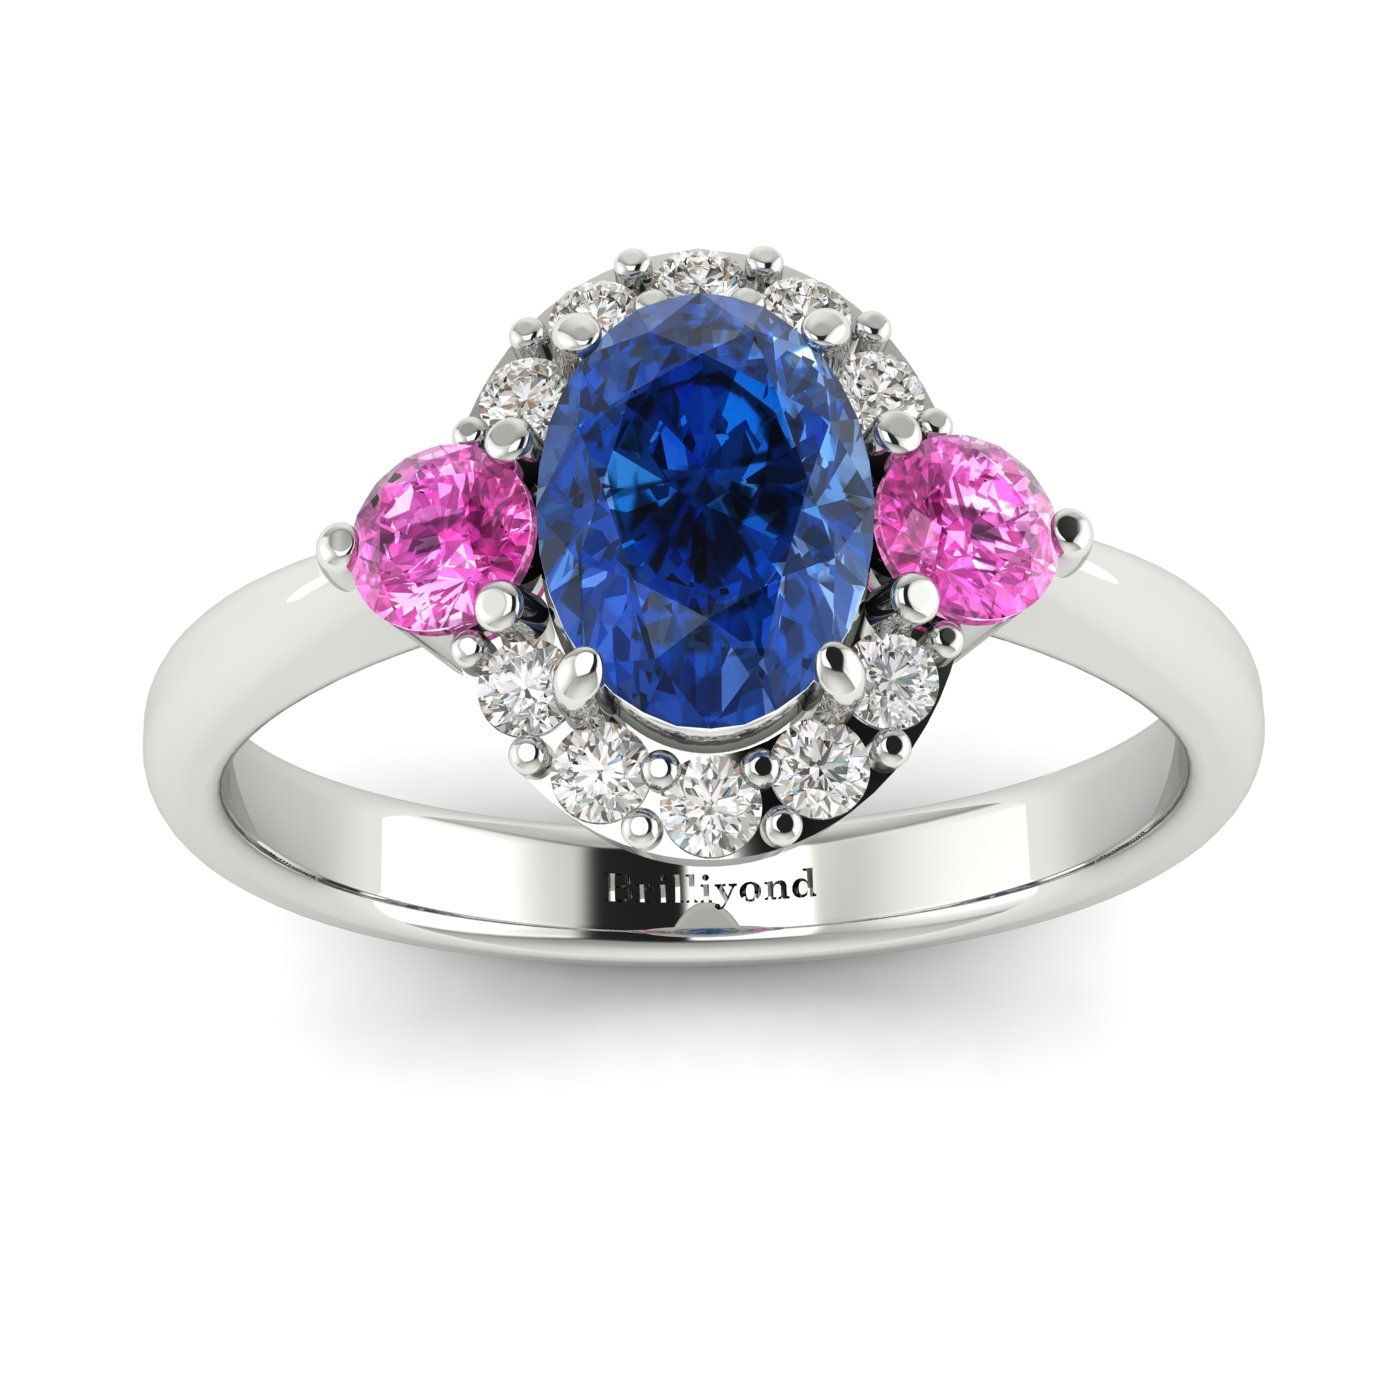 Diamond Accented Three Stone Sapphire Engagement Ring in 18k White Gold Setting